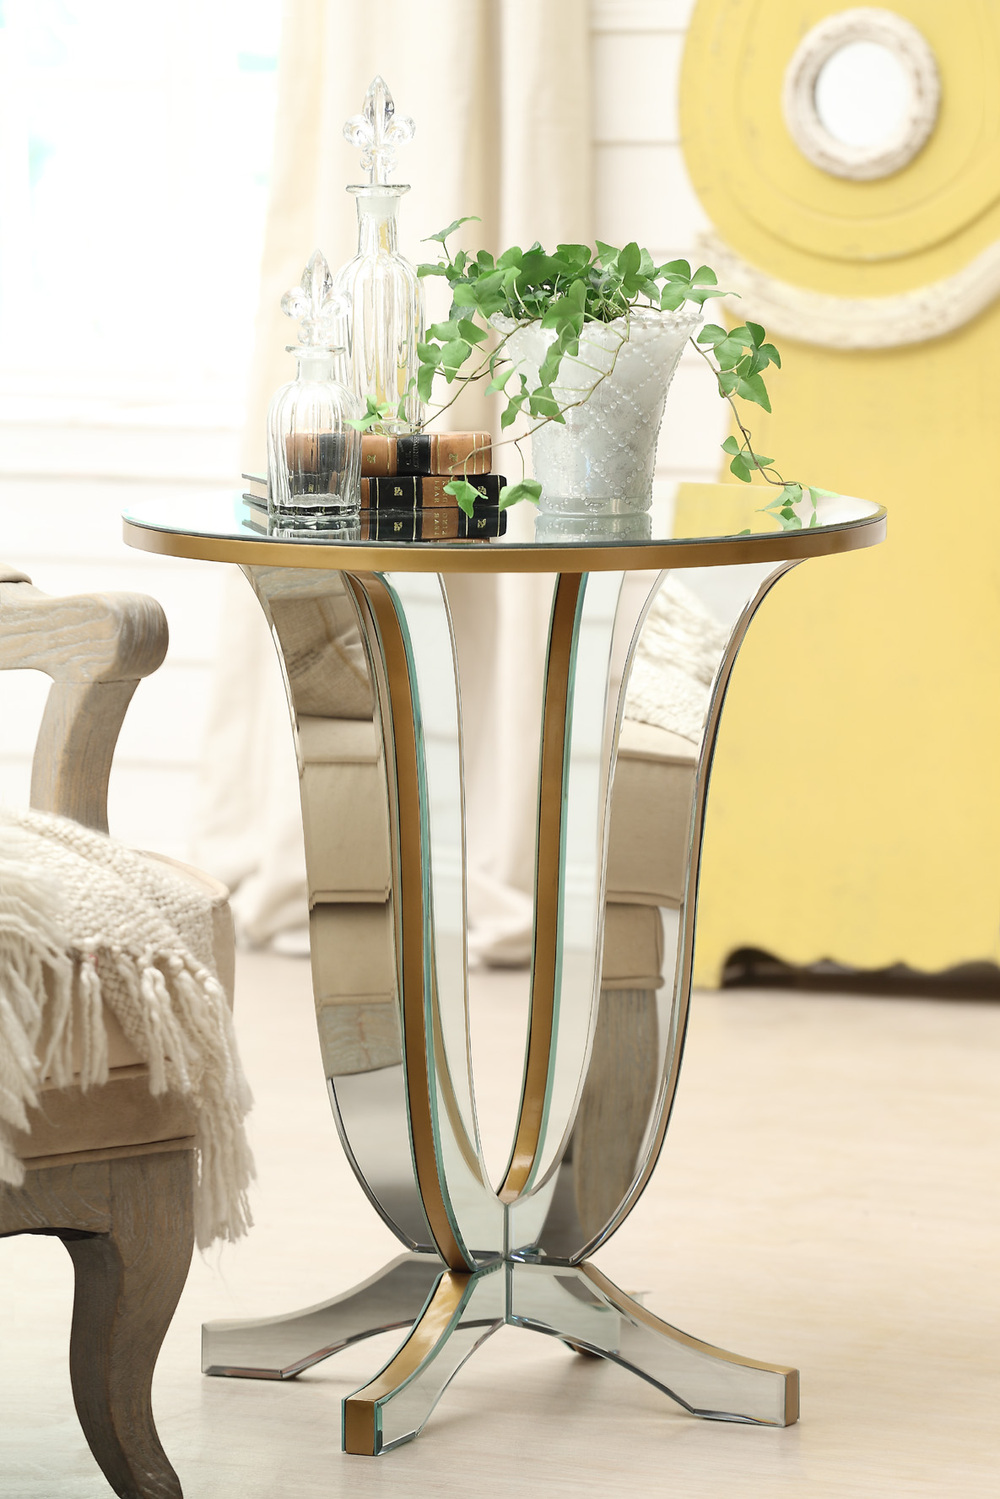 furniture delightful gold mirrored buffet table for living charming idea room decoration using round side including yellow wall and queen anne chair legs divine night stand accent